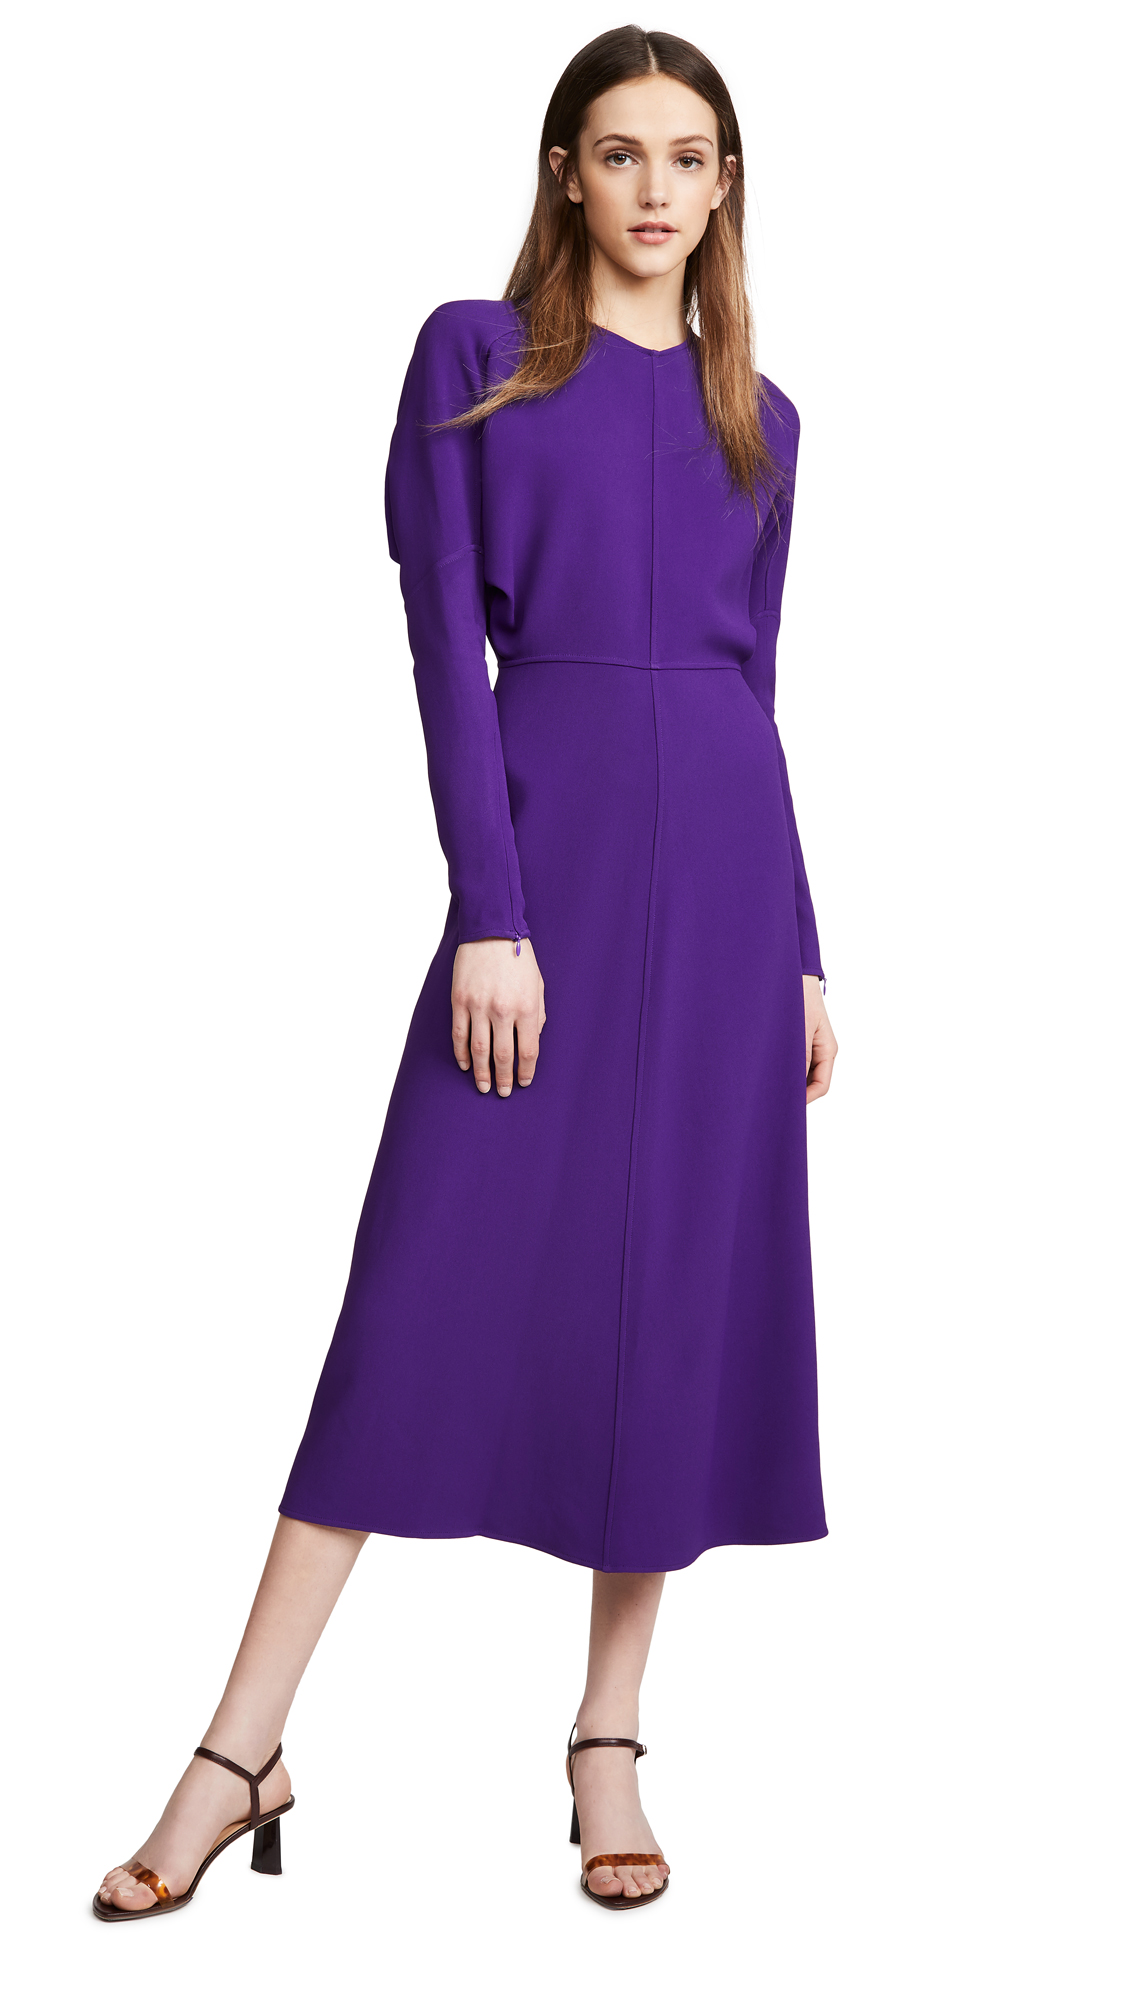 Victoria Beckham Long Sleeve Dolman Midi Dress - 30% Off Sale